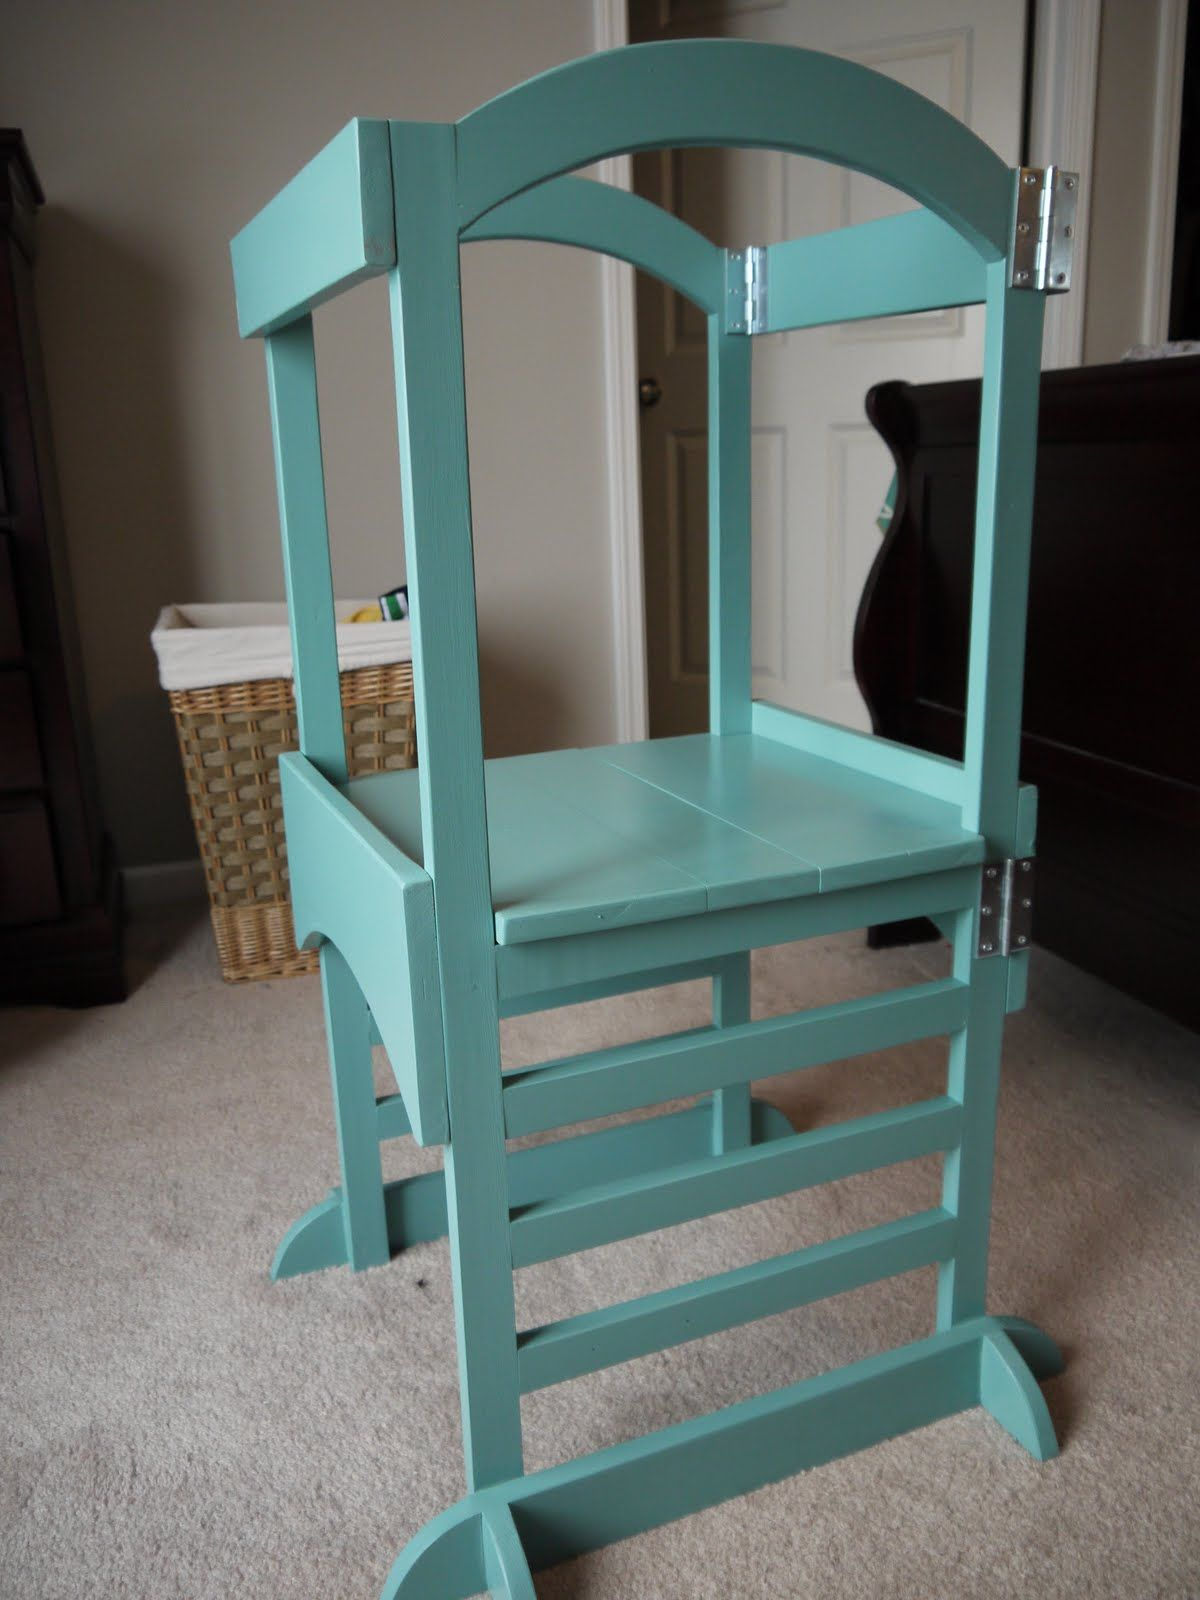 Wondrous Ana White Build A The Little Helper Tower Free And Easy Gmtry Best Dining Table And Chair Ideas Images Gmtryco